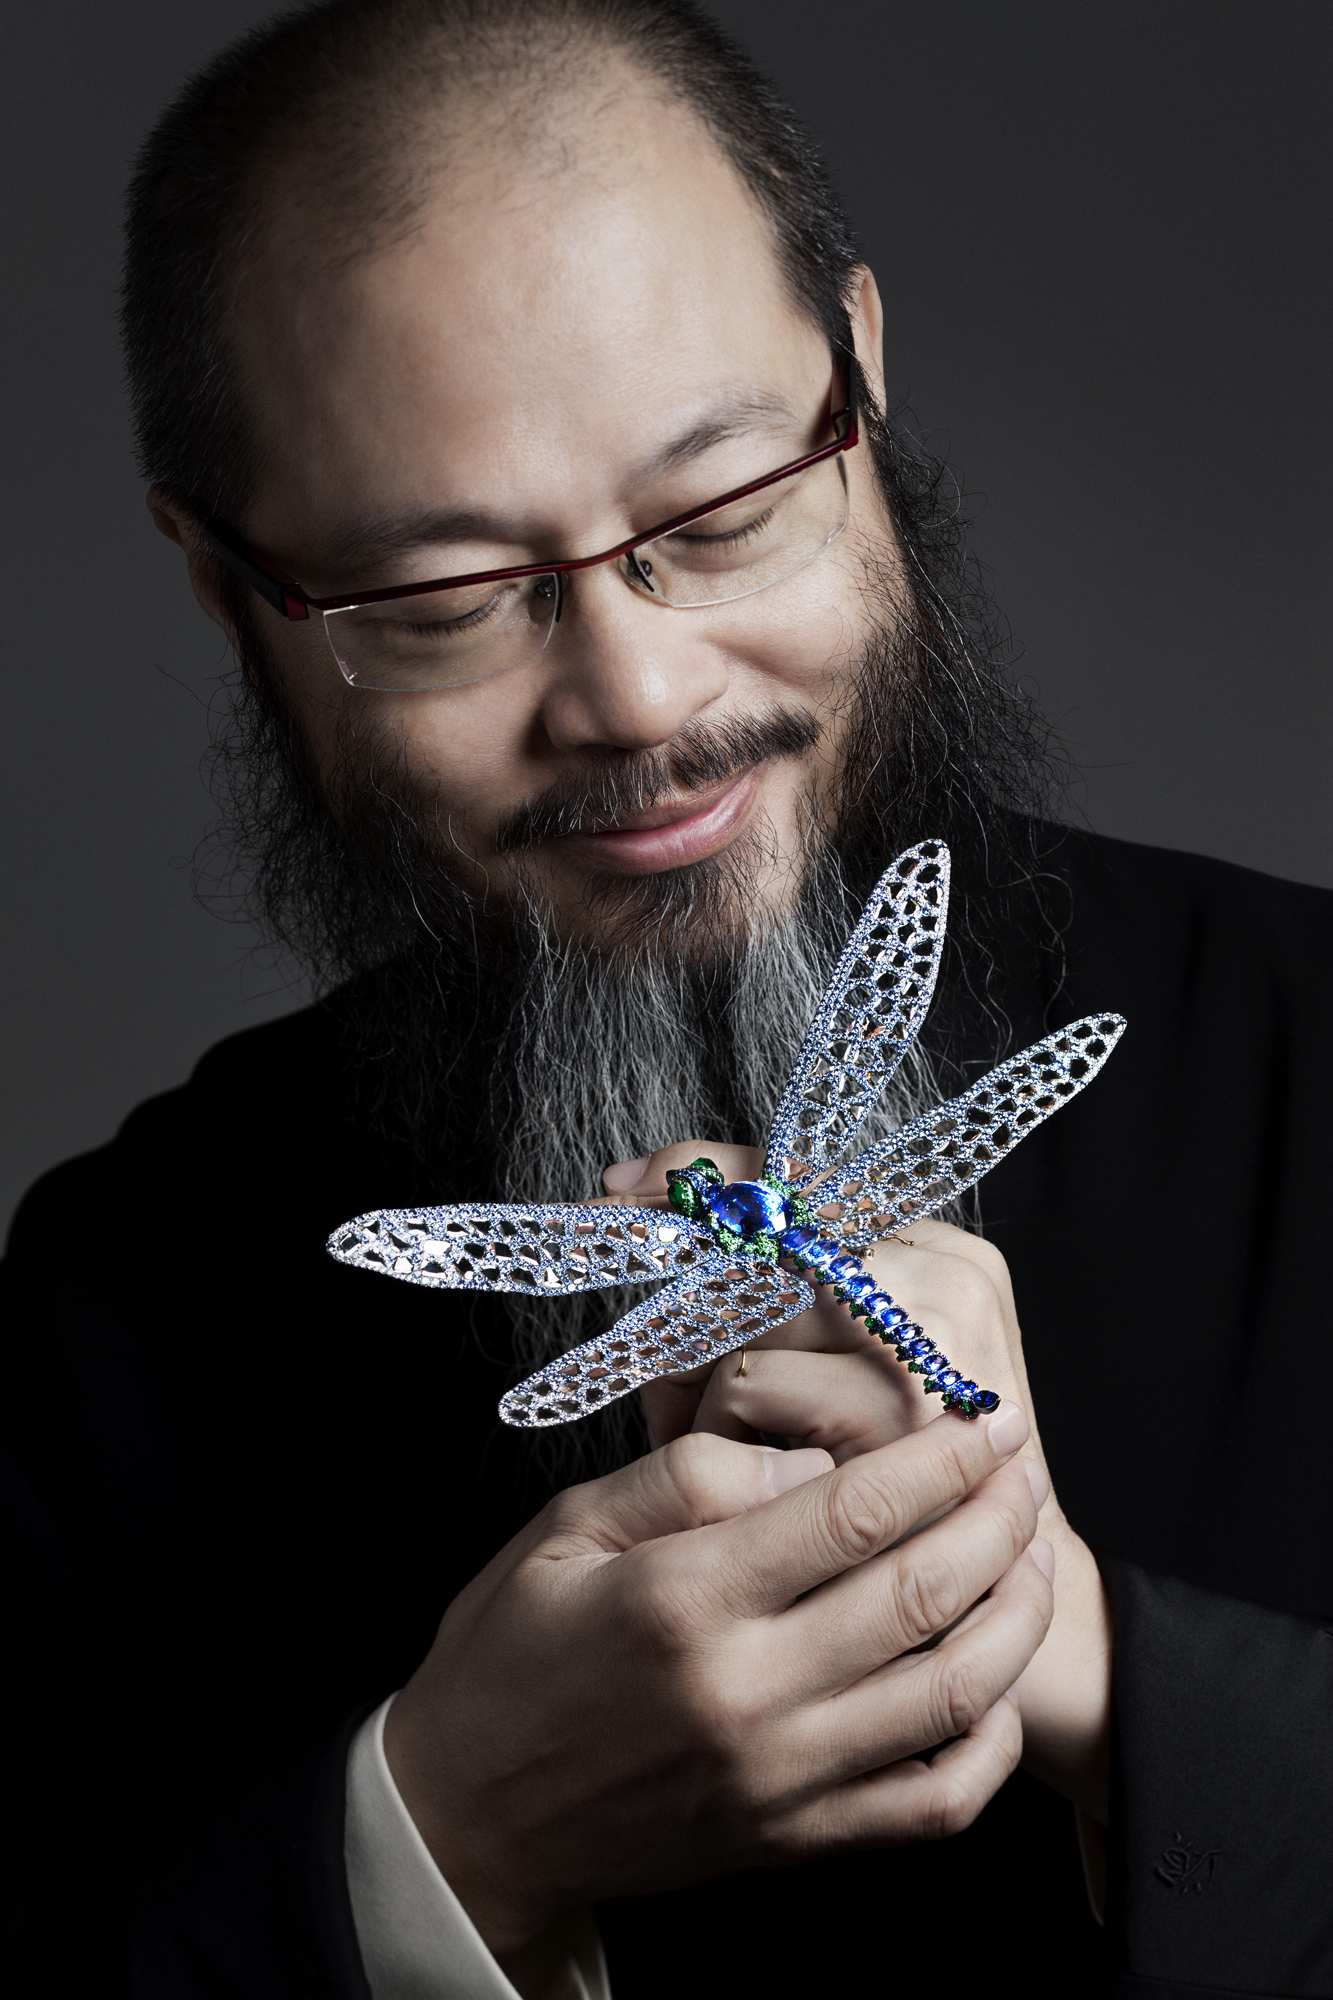 Wallace Chan, the first and only Chinese jeweller who was invited to showcase his one-of-a-kind designs alongside some of the most esteemed houses from the Place Vendome